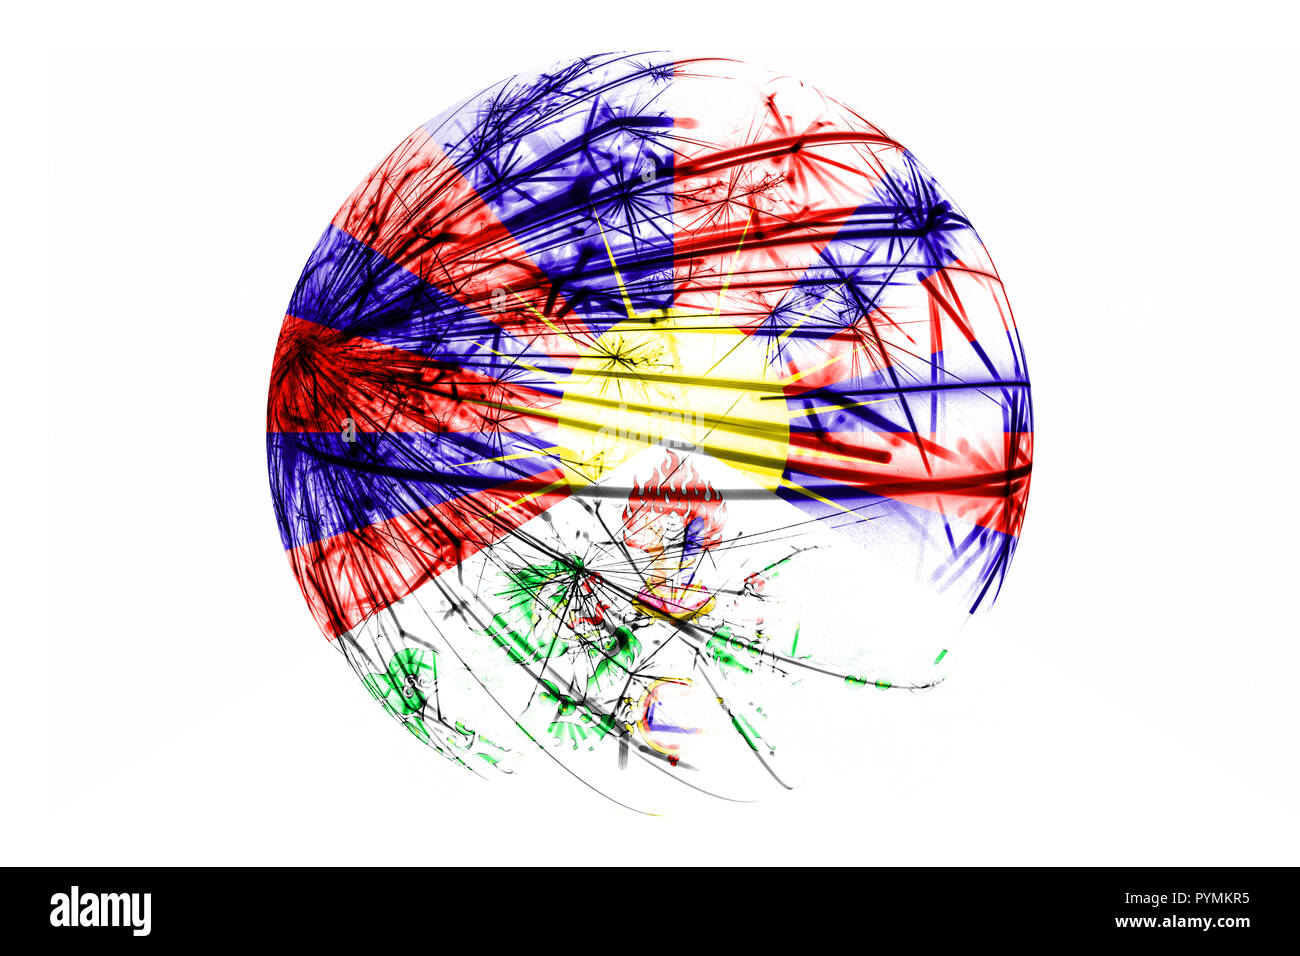 Abstract Tibet  sparkling flag, Christmas ball concept isolated on white background - Stock Image